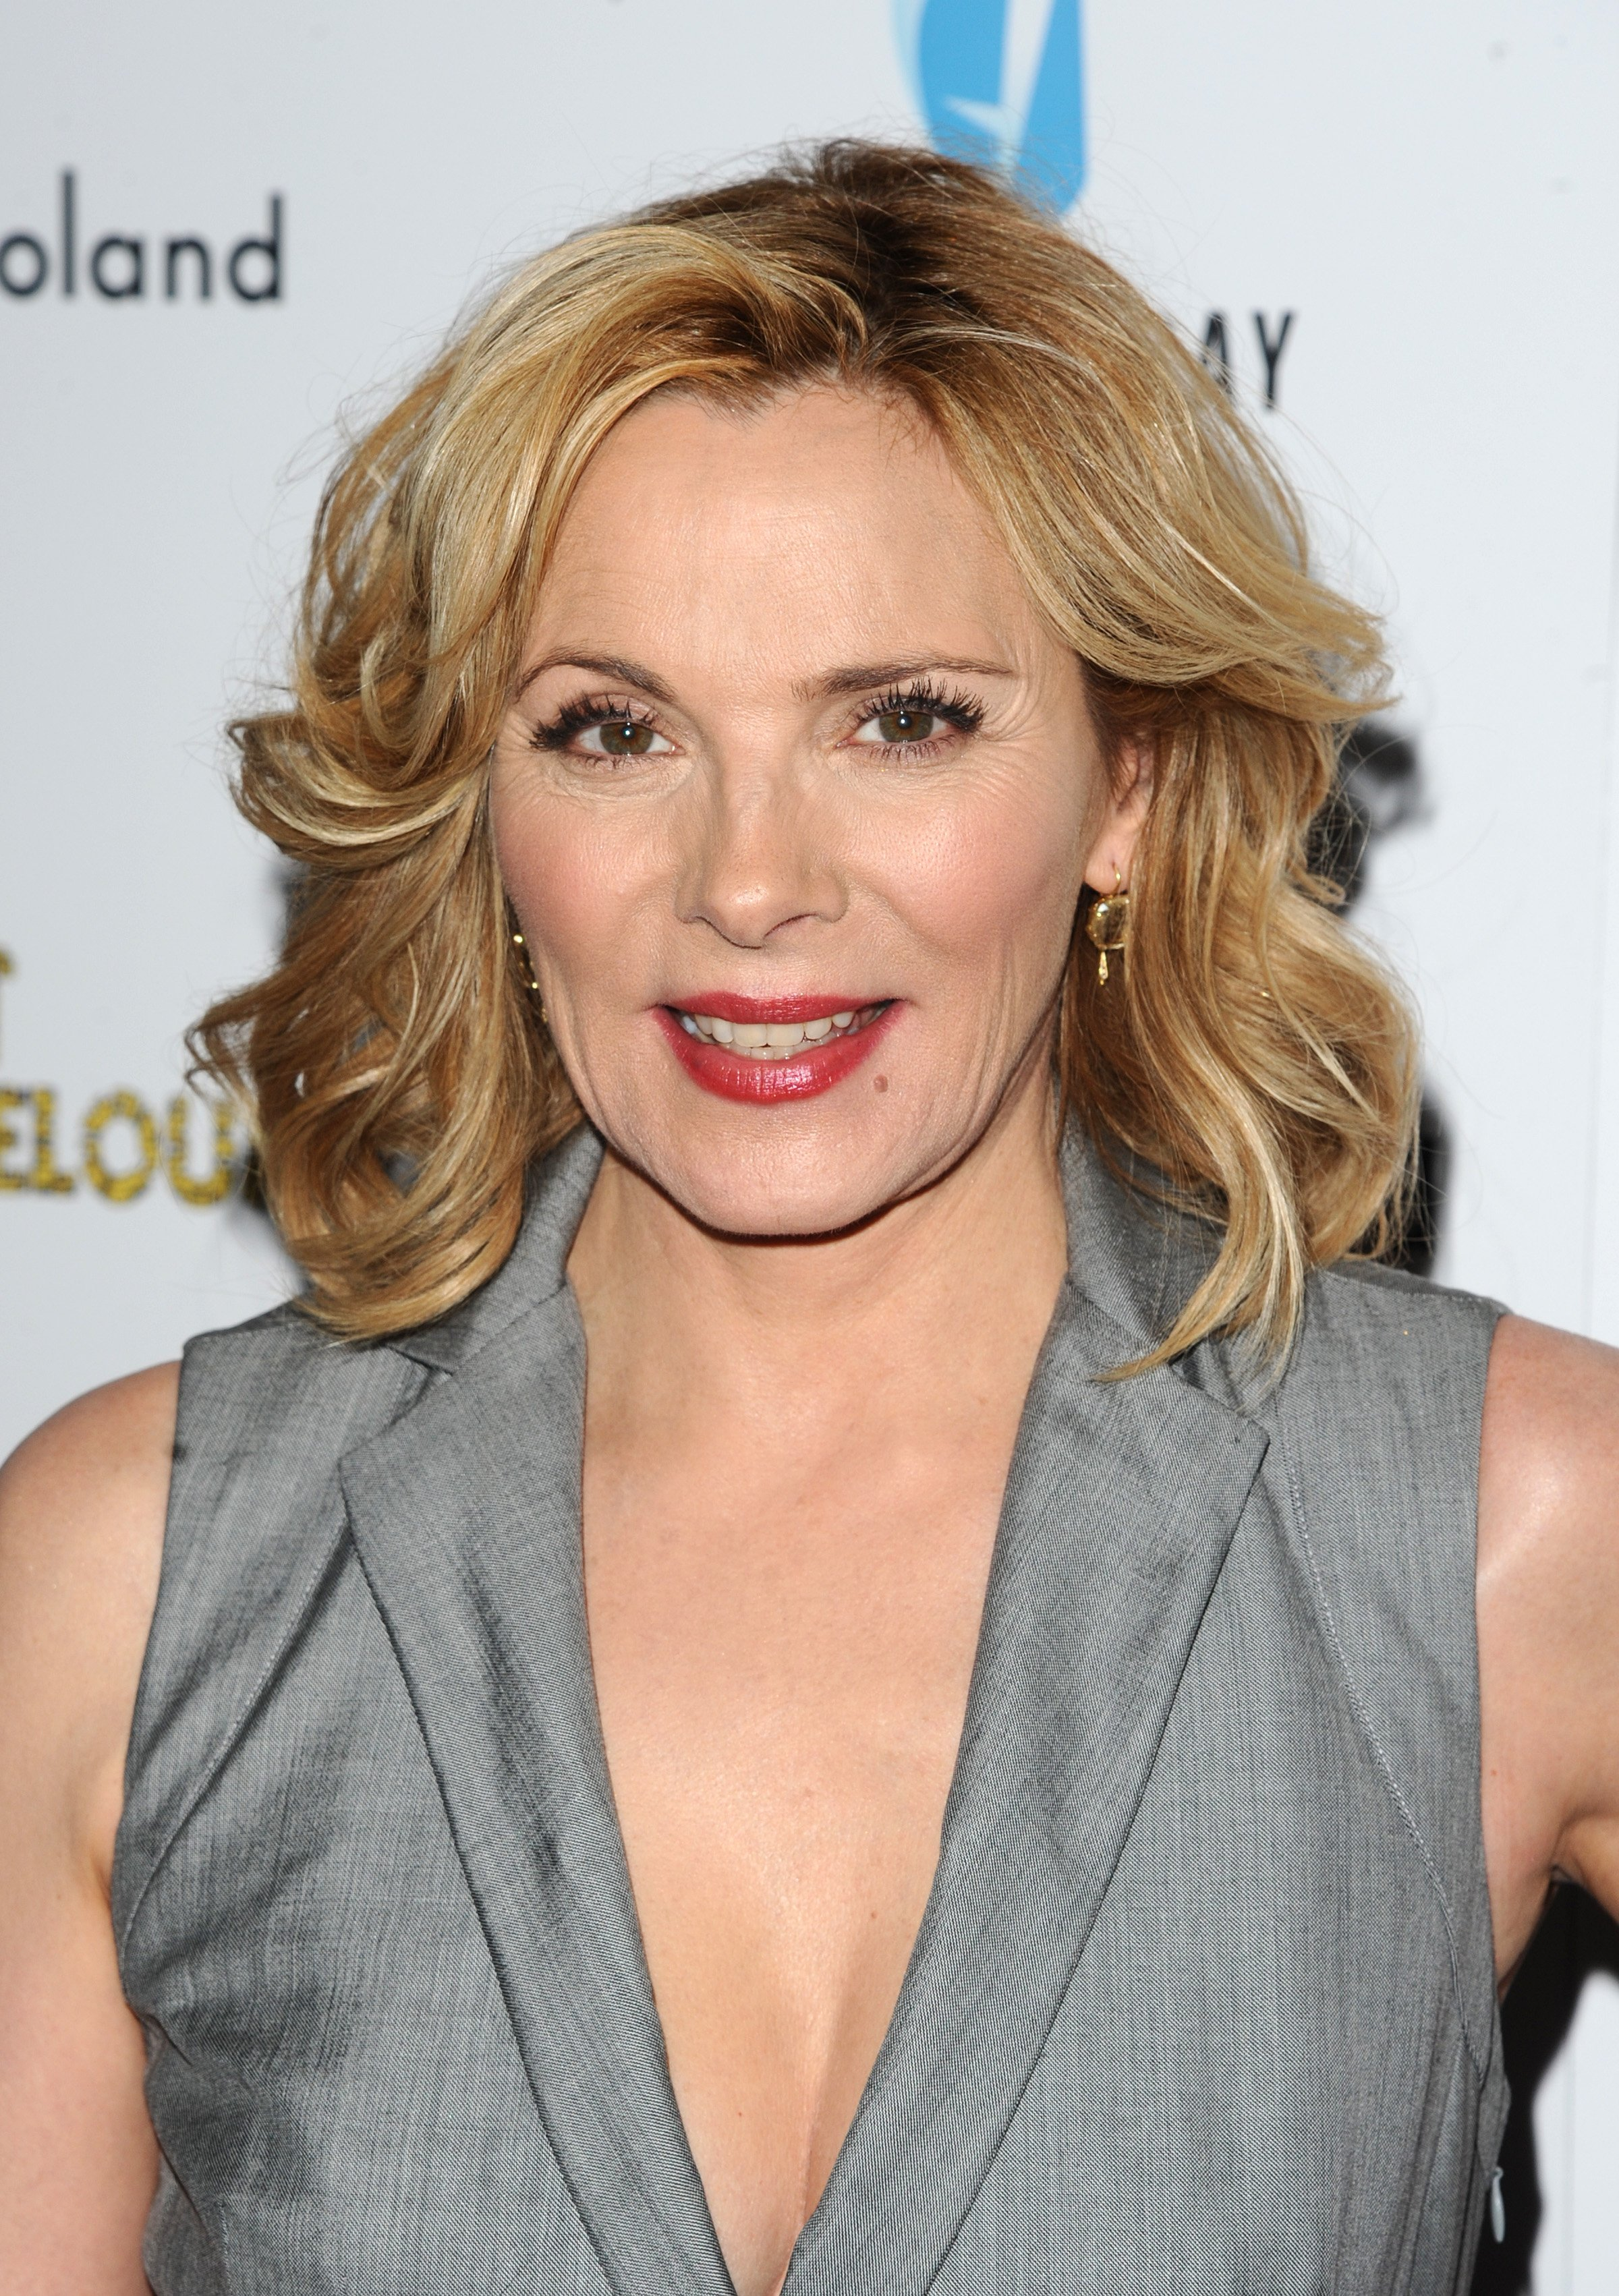 celebrity photos kim c... Kim Cattrall